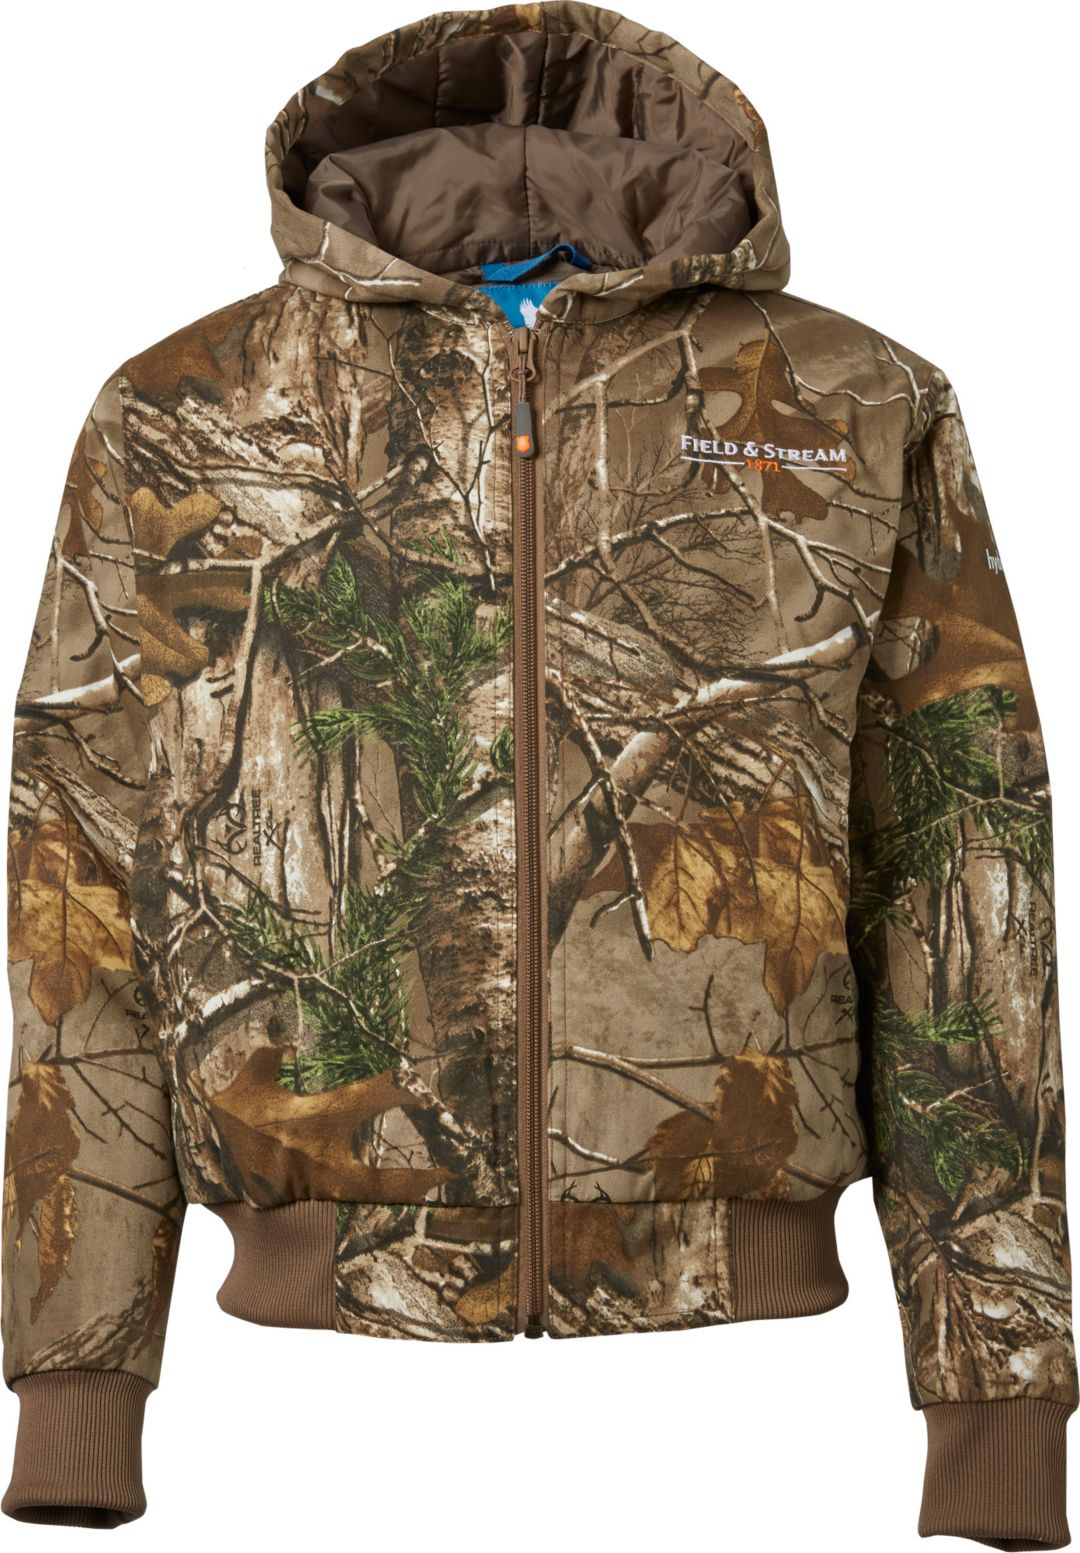 f18e823651308 Field & Stream Youth Twill Bomber Insulated Hunting Jacket | Field ...